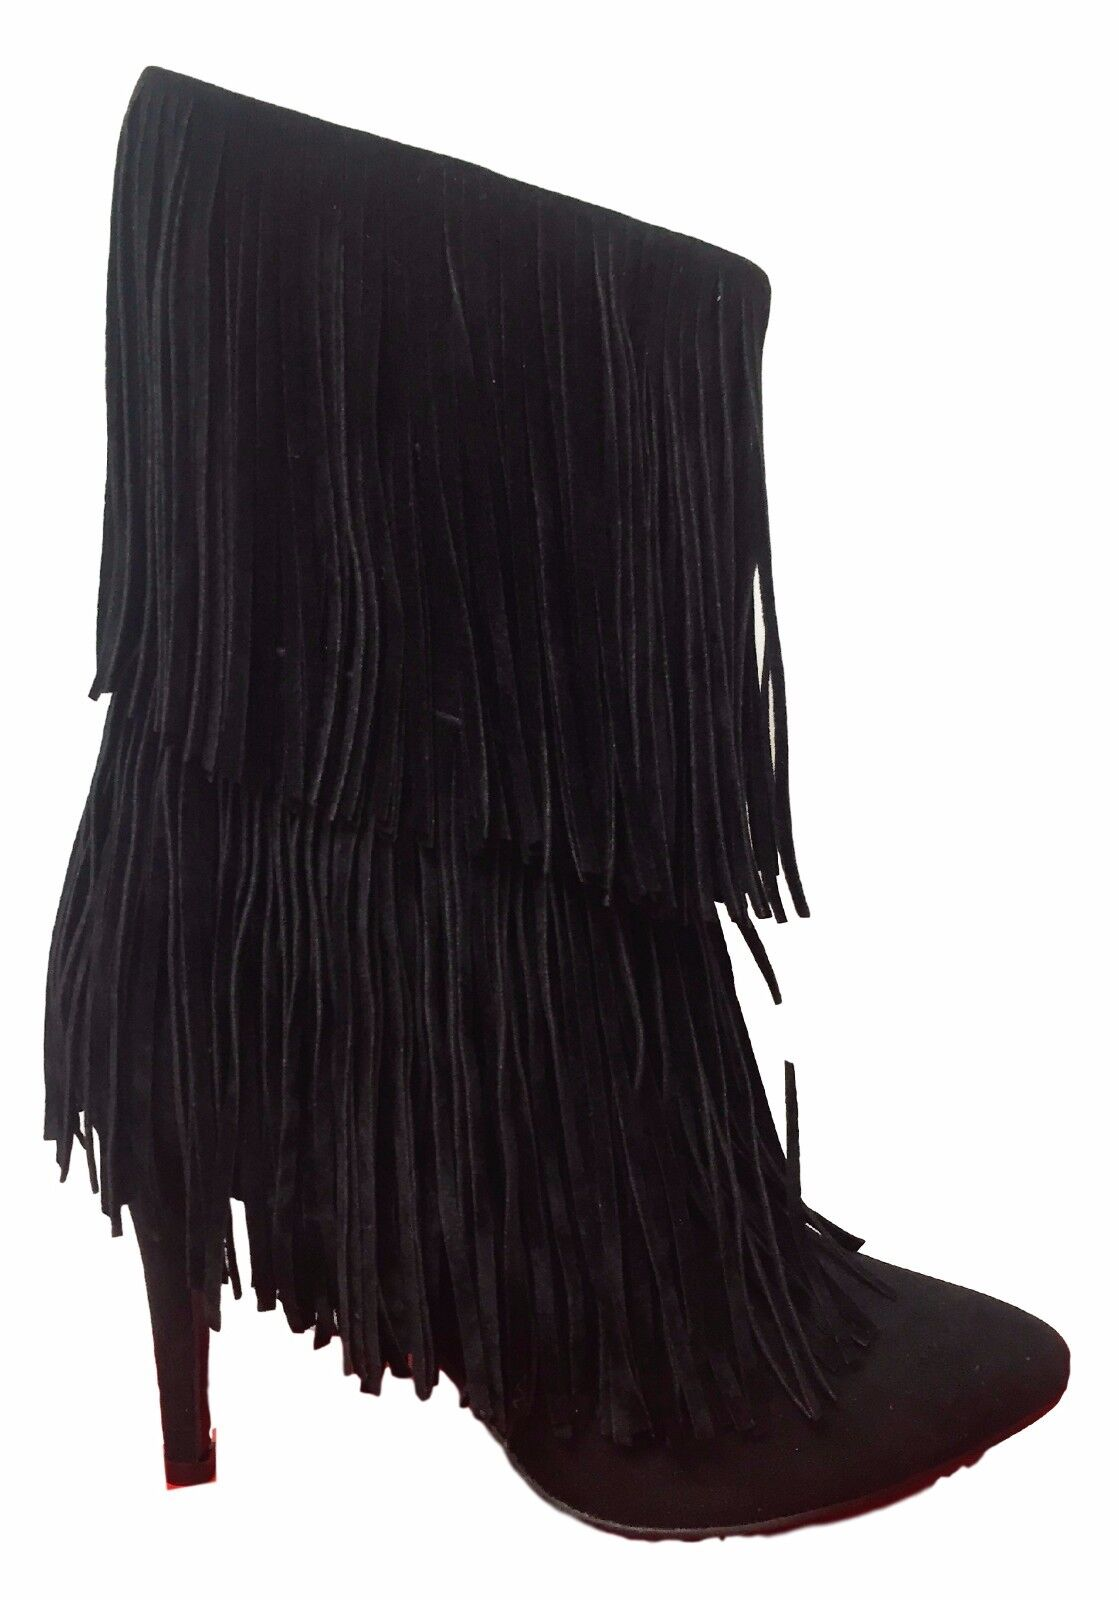 Rain-1 2 Layer Fringe Pointy Toe Faux Suede Stiletto Heel Ankle Bootie Boot BLK